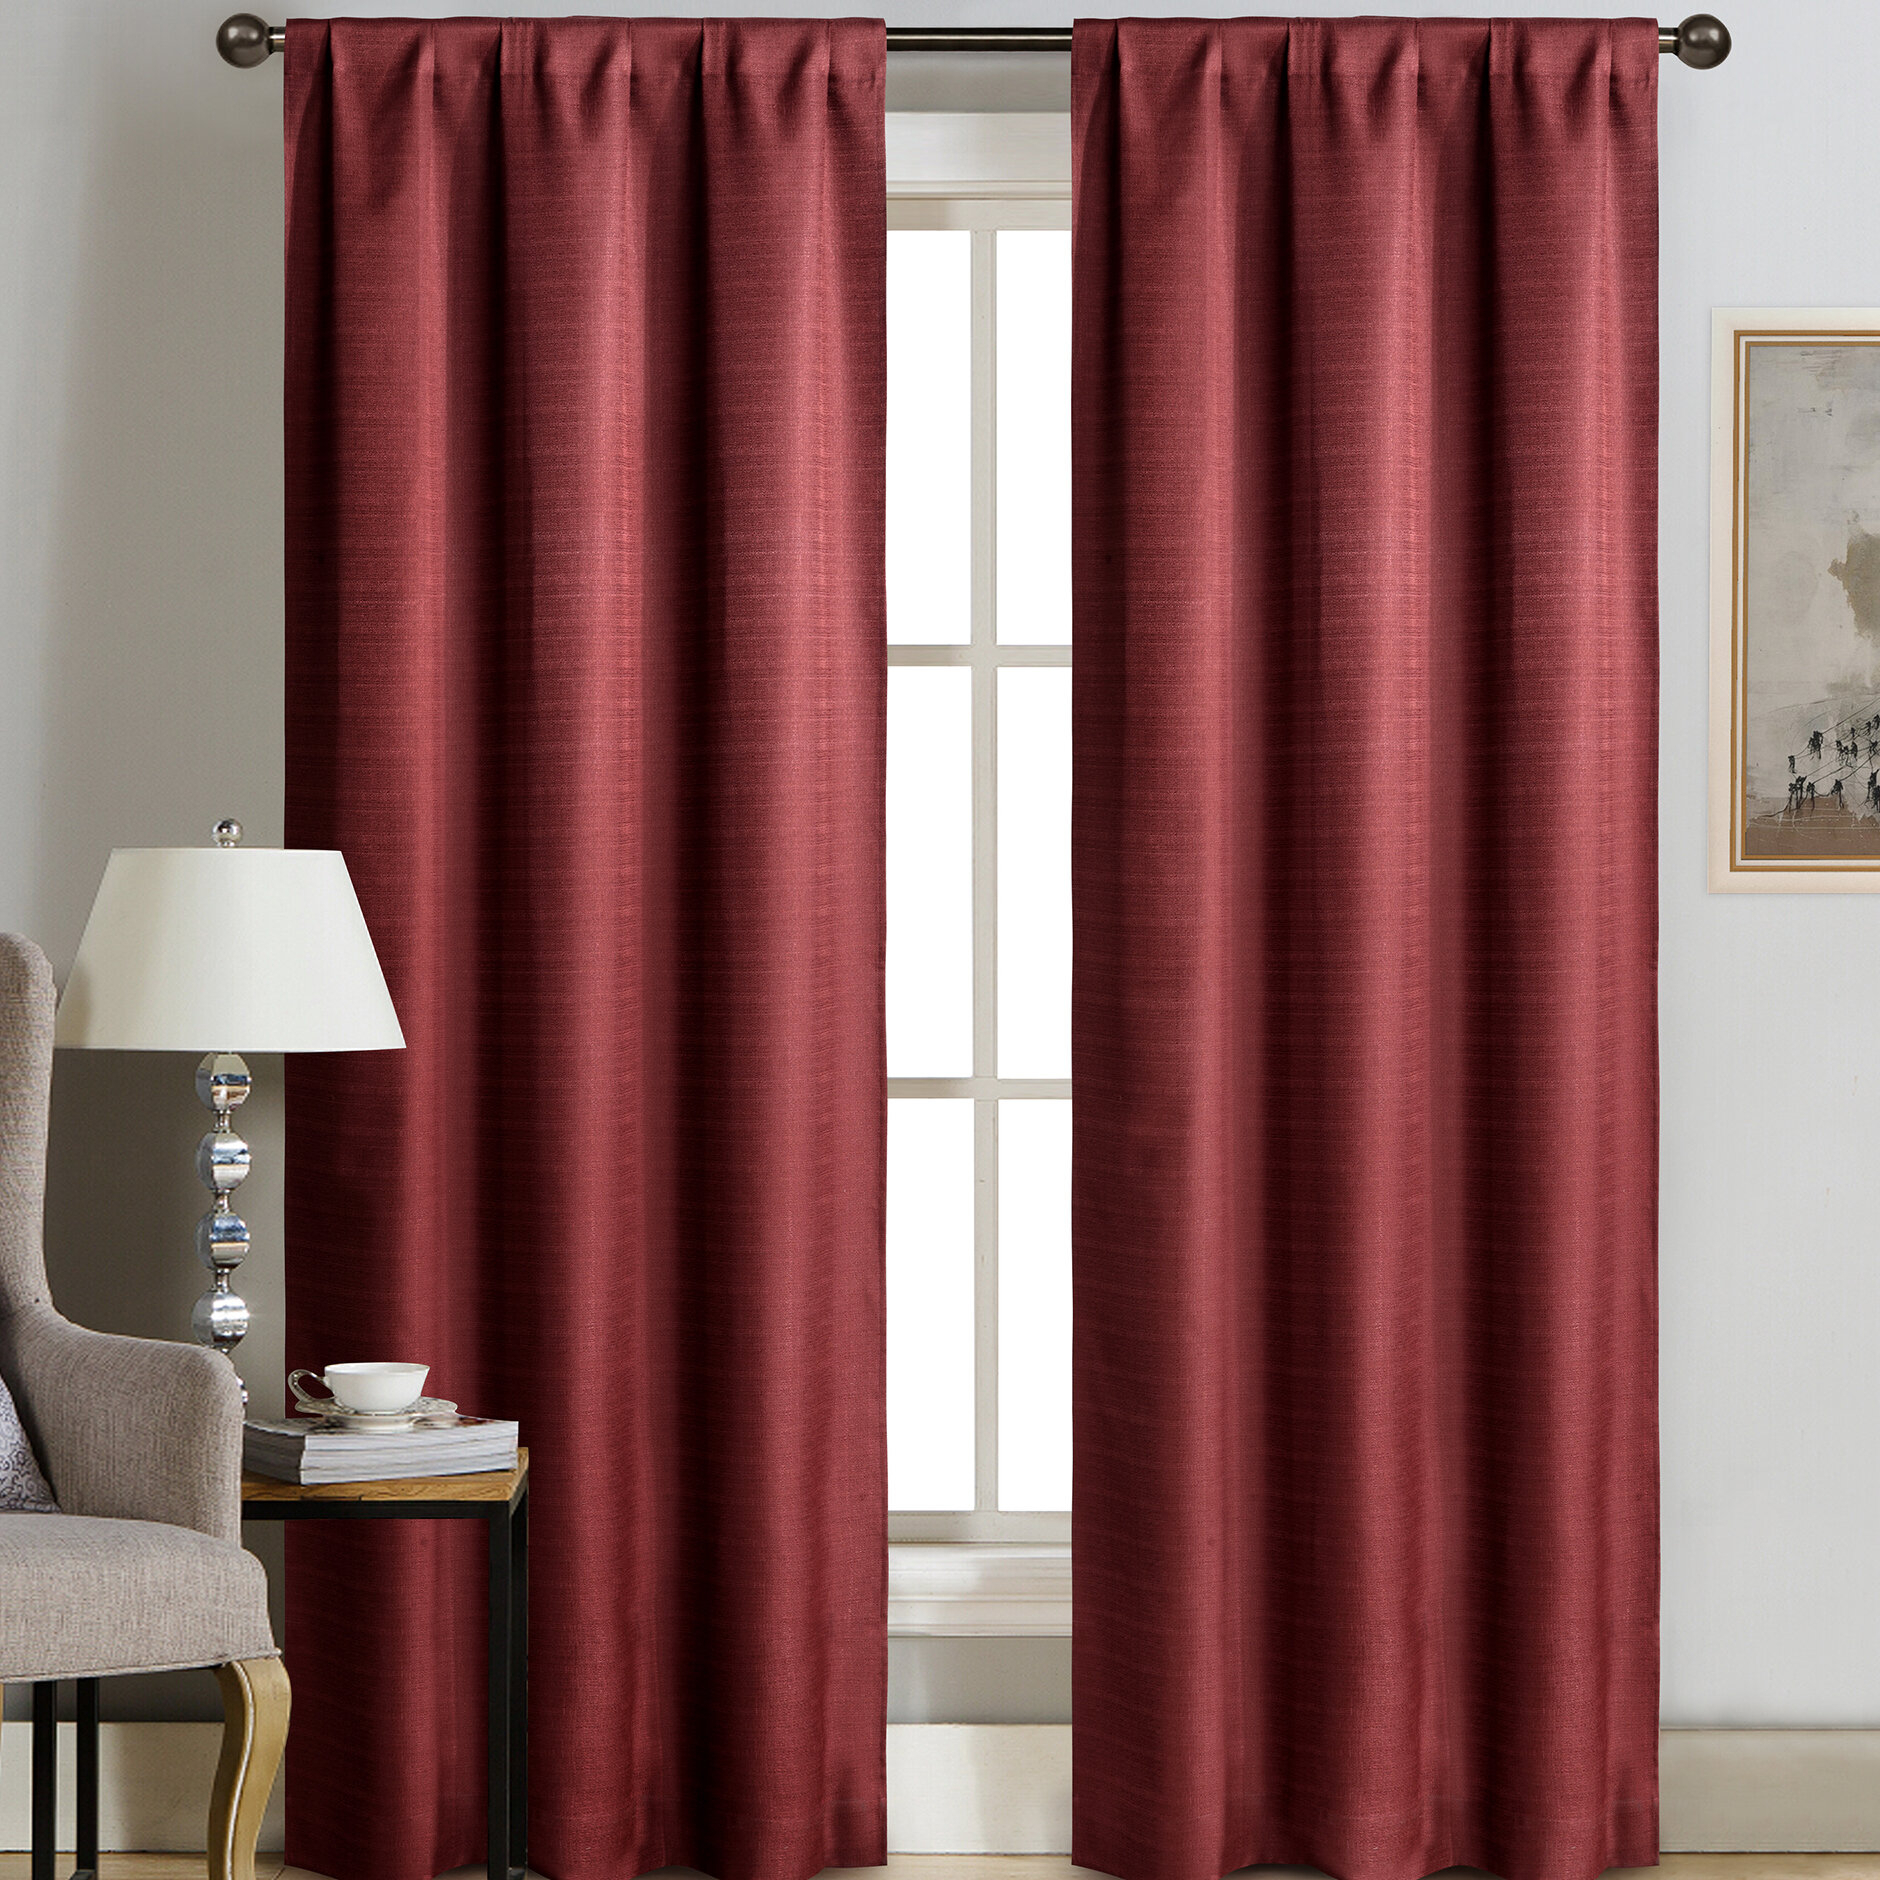 Terrazas Solid Color Semi Sheer Grommet Curtain Panels With Luxury Collection Cranston Sheer Curtain Panel Pairs (View 20 of 20)